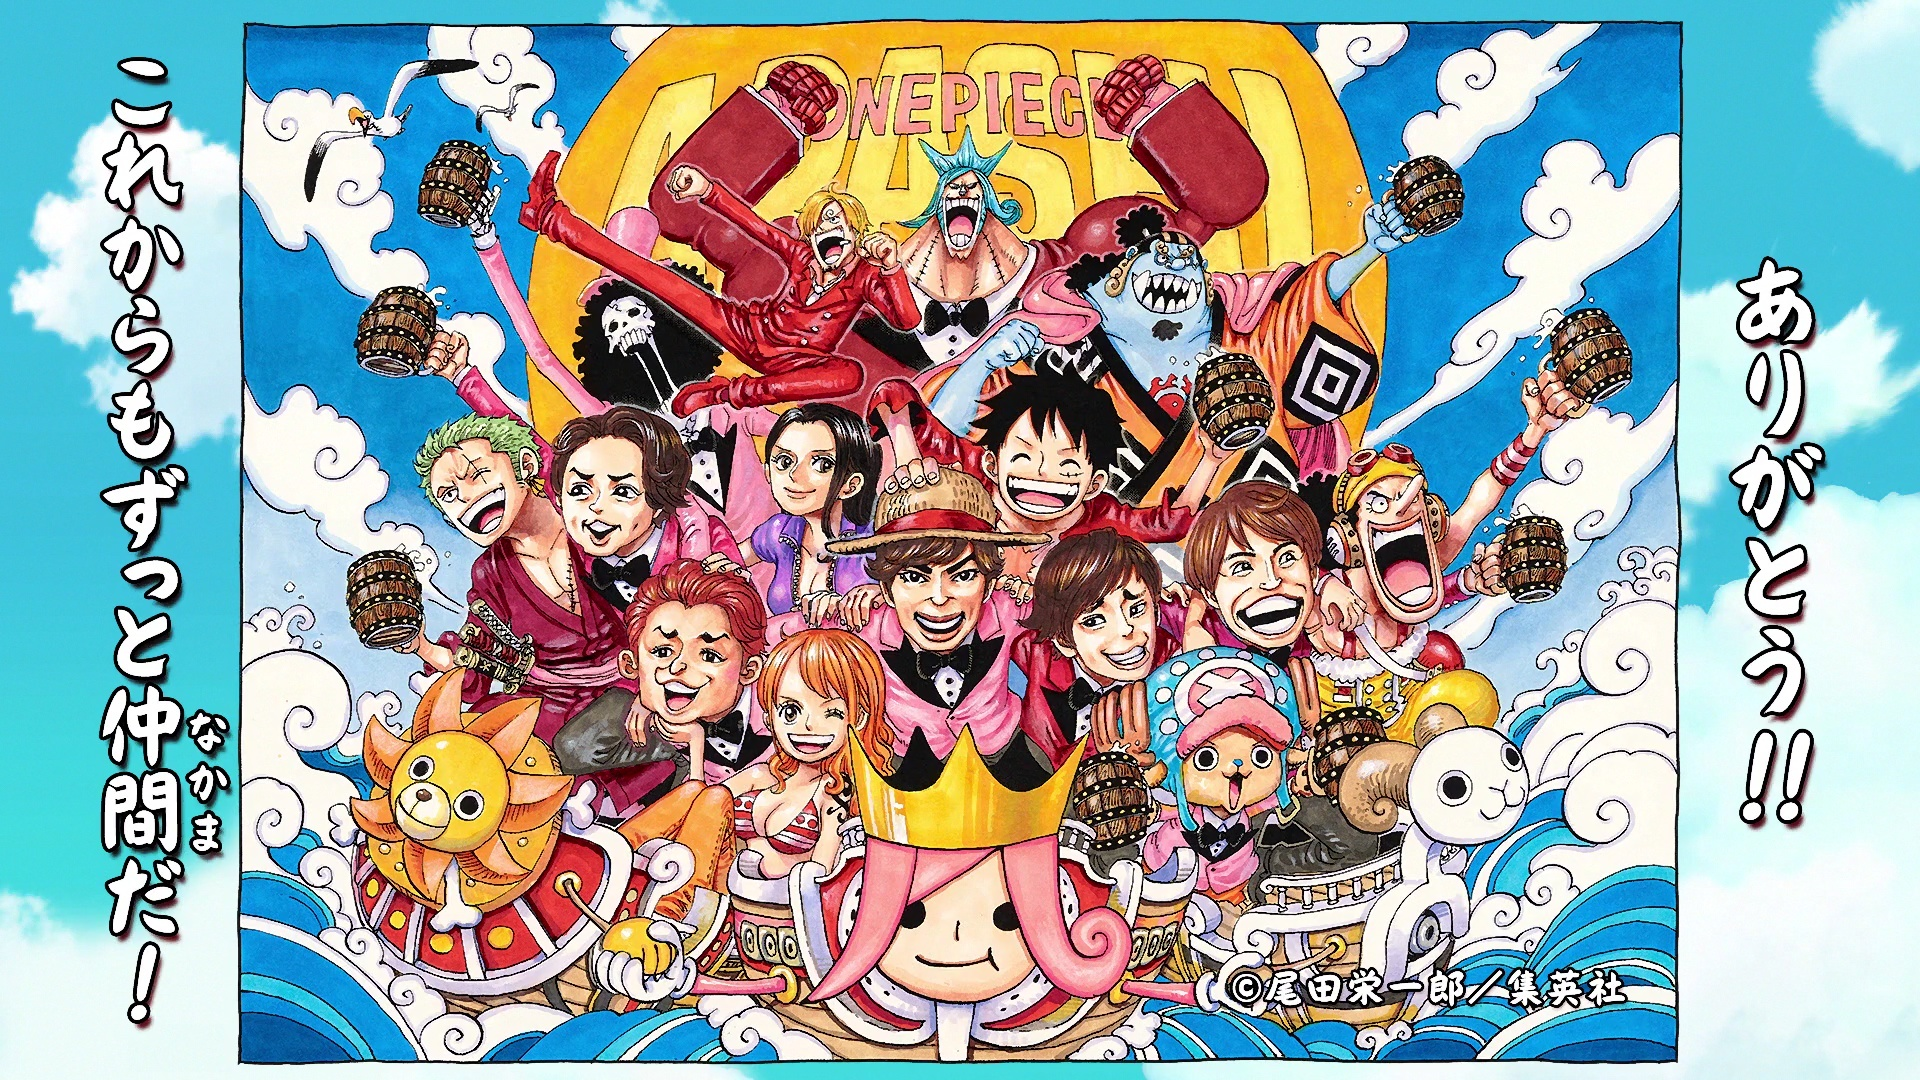 ONE PIECE 956 VOSTFR SD/HD/HD 10BITS/FHD News background